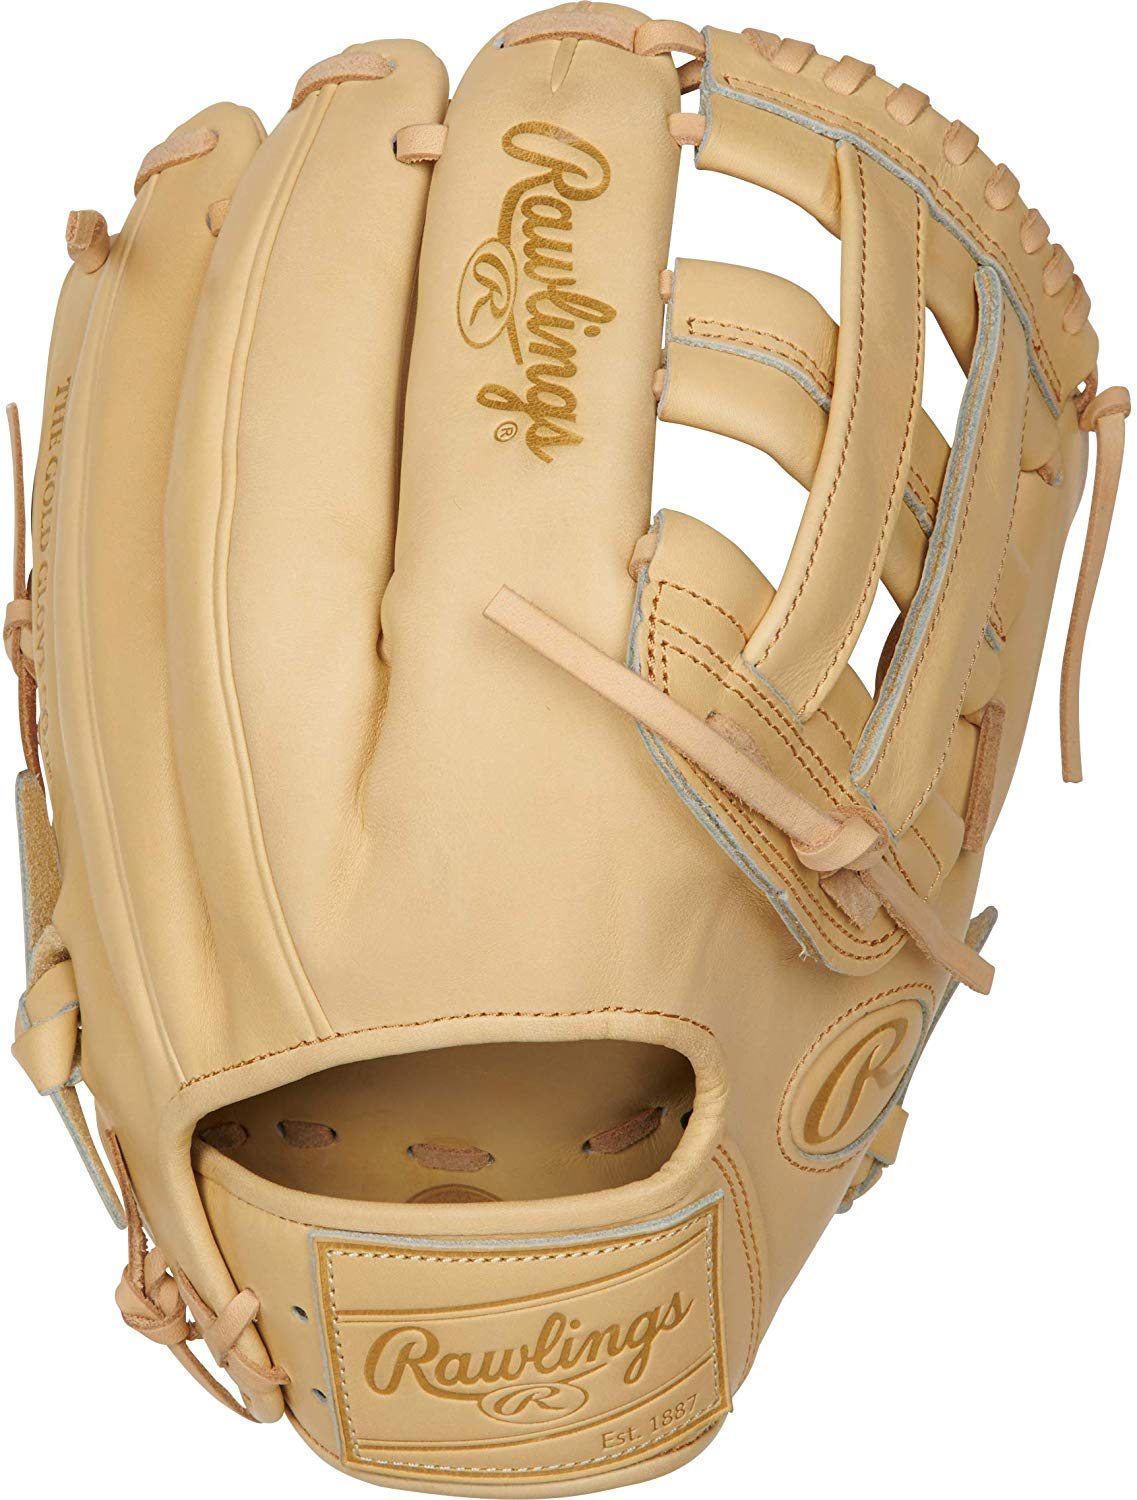 rawlings-pro-label-camel-baseball-glove-12-25-right-hand-throw PROKB17-6C-RightHandThrow  083321691379 <p>12.25 pattern Limited Edition Kris Bryant Pattern Indent Stamping On Shell